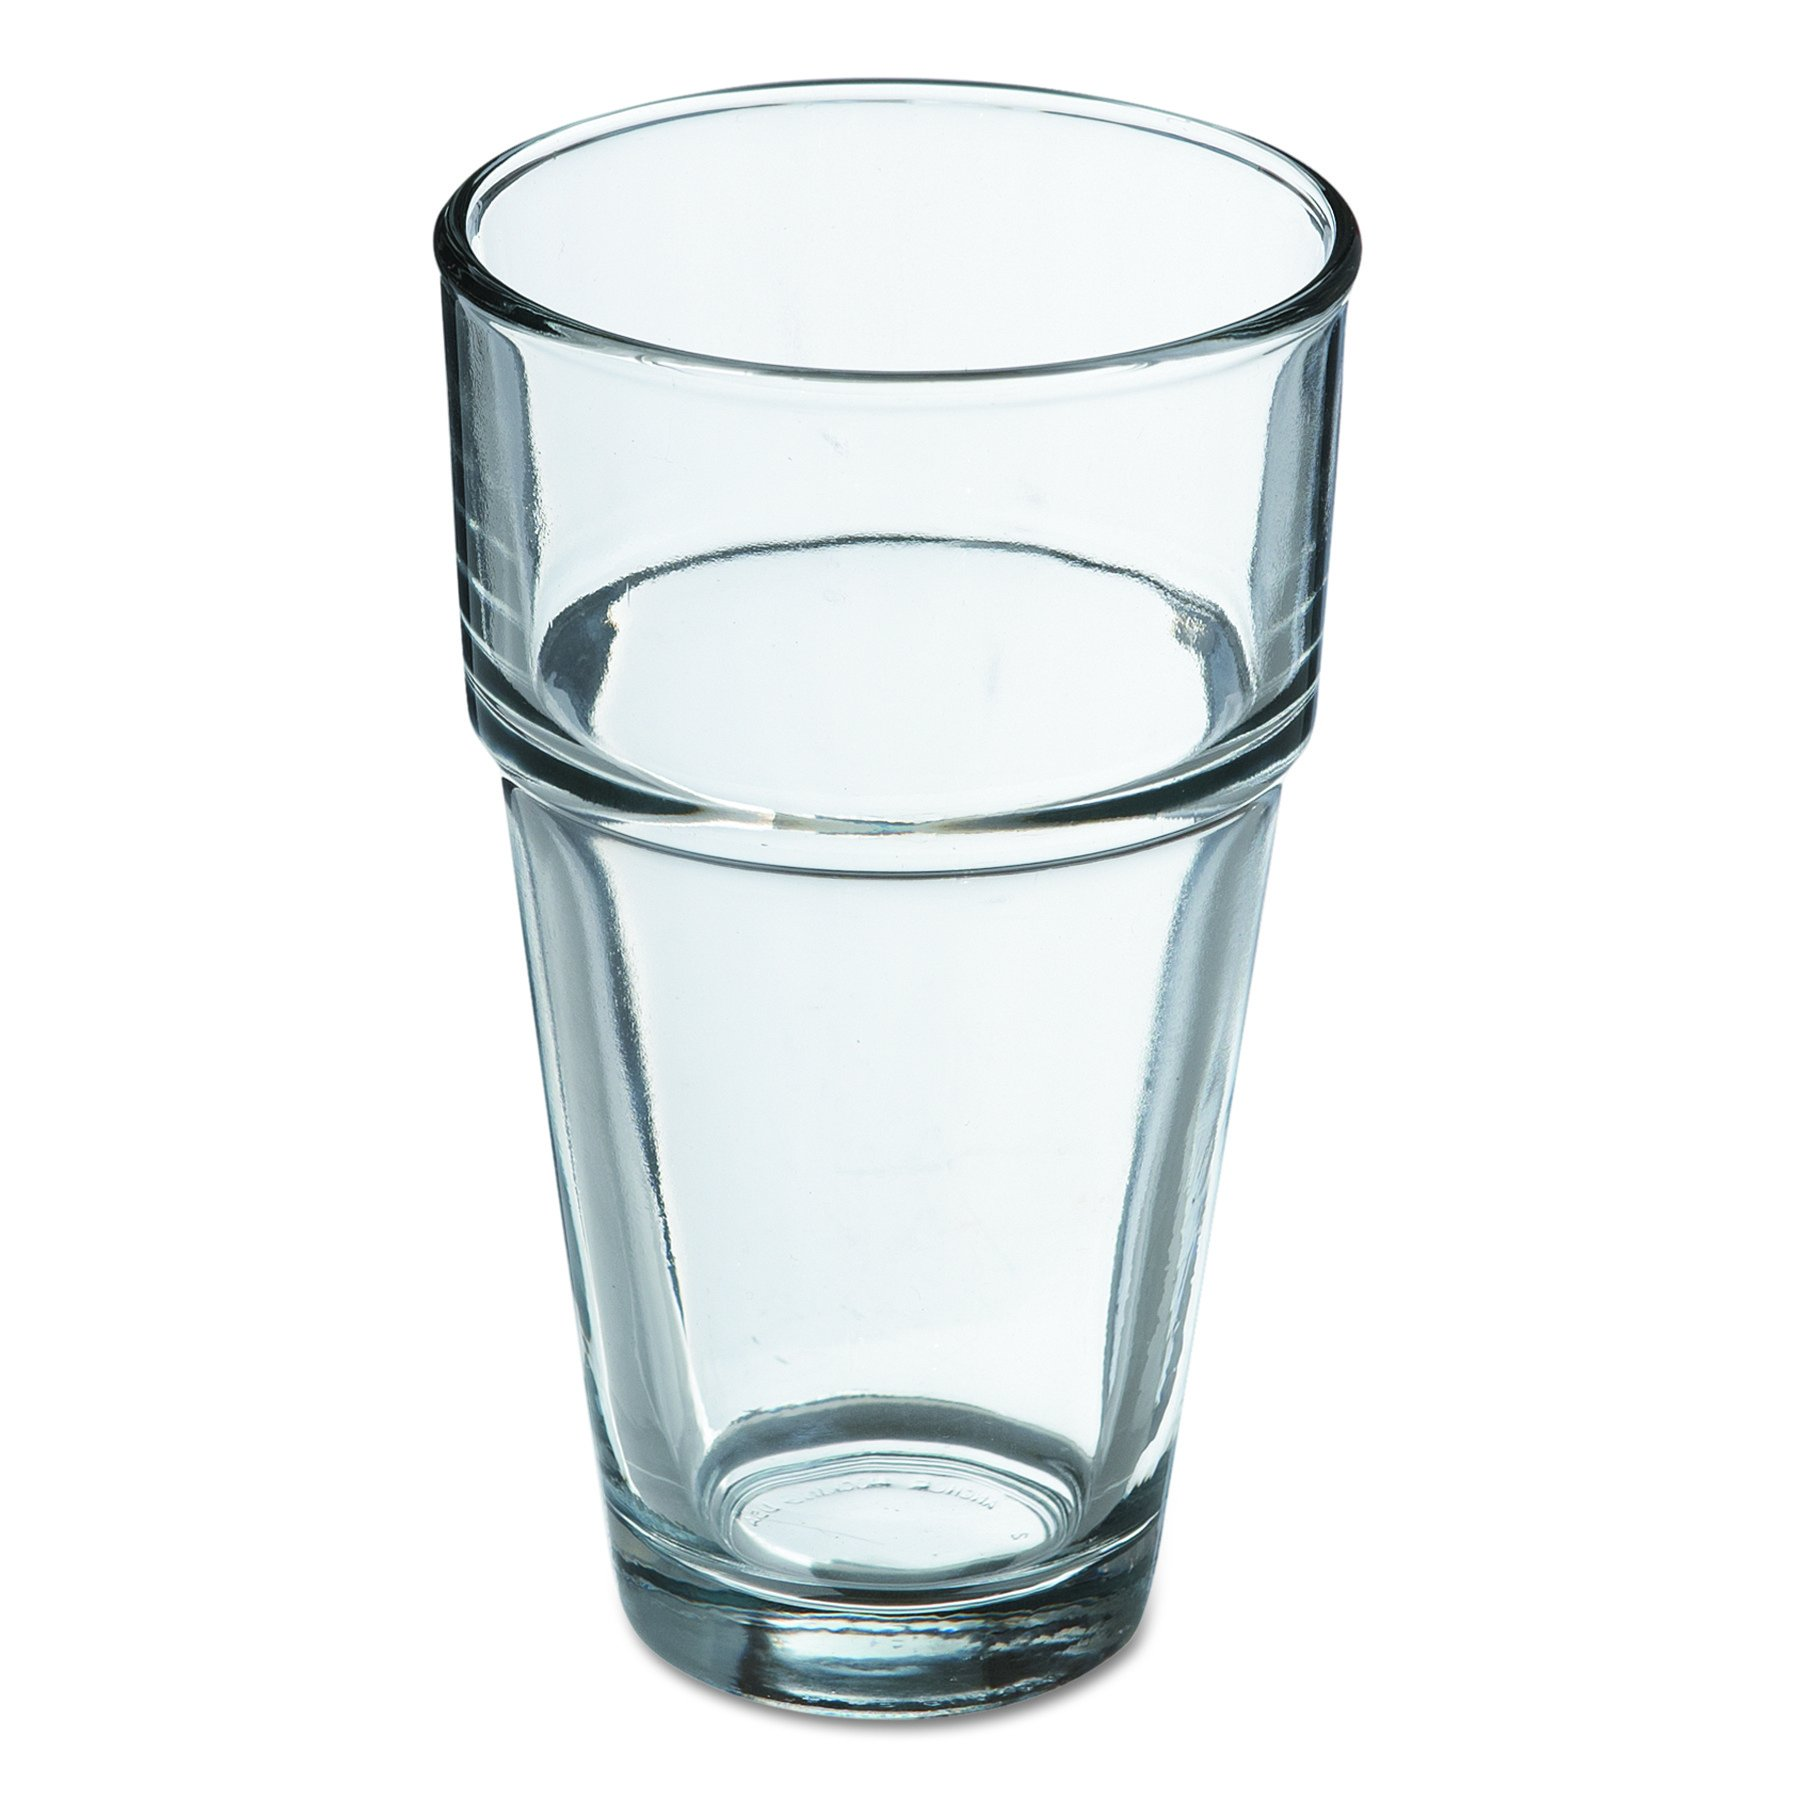 Stackable 73017 3-1/2'' Diameter x 6'' Height, 16 oz Cooler Glass (Case of 36)